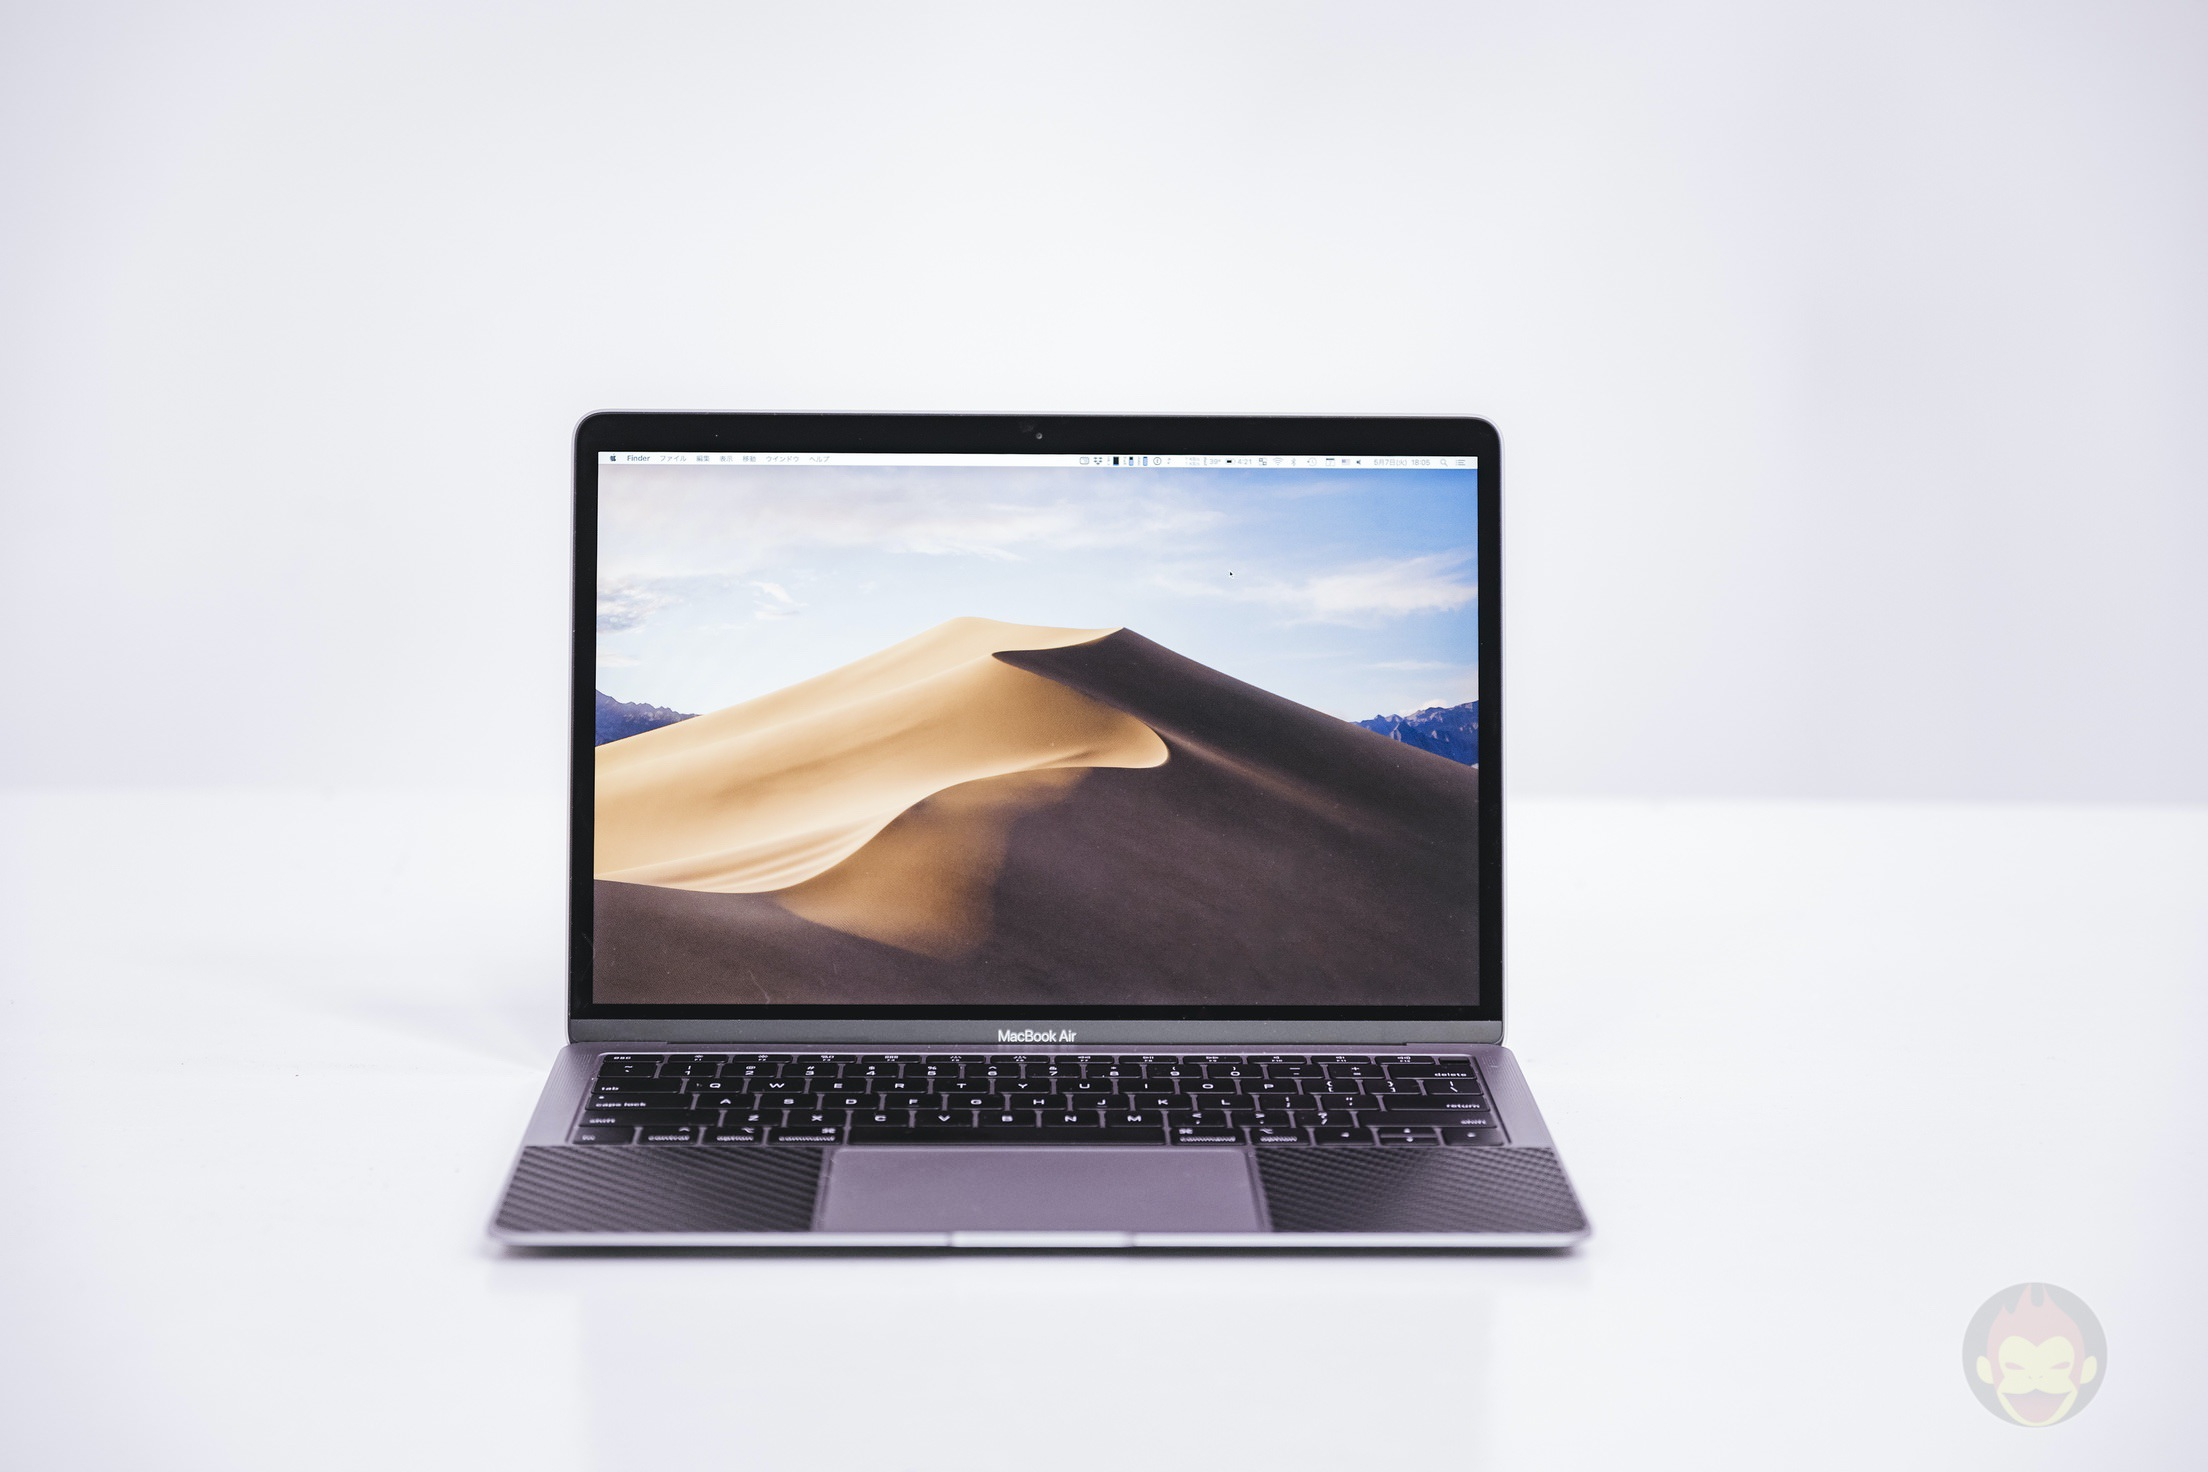 MacBook-Air-2018-GoriMe-Review-20.jpg